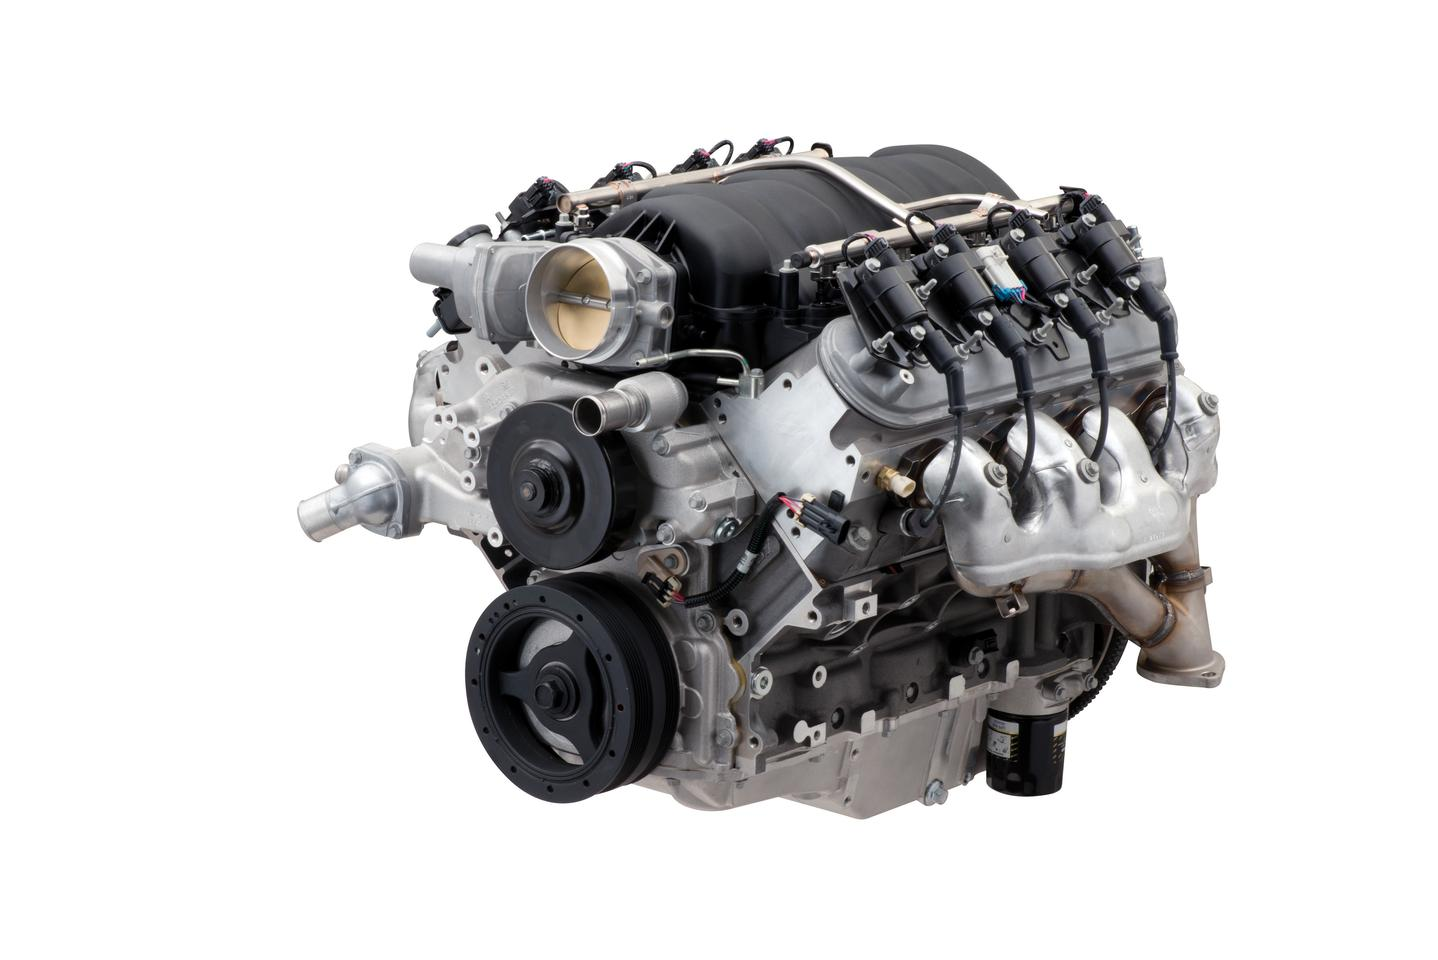 Mightier than the LS7, the new LS427/570 crate engine rocks 570 horsepower, 530 lb-ft and easier installation, whatever you choose to jam it into